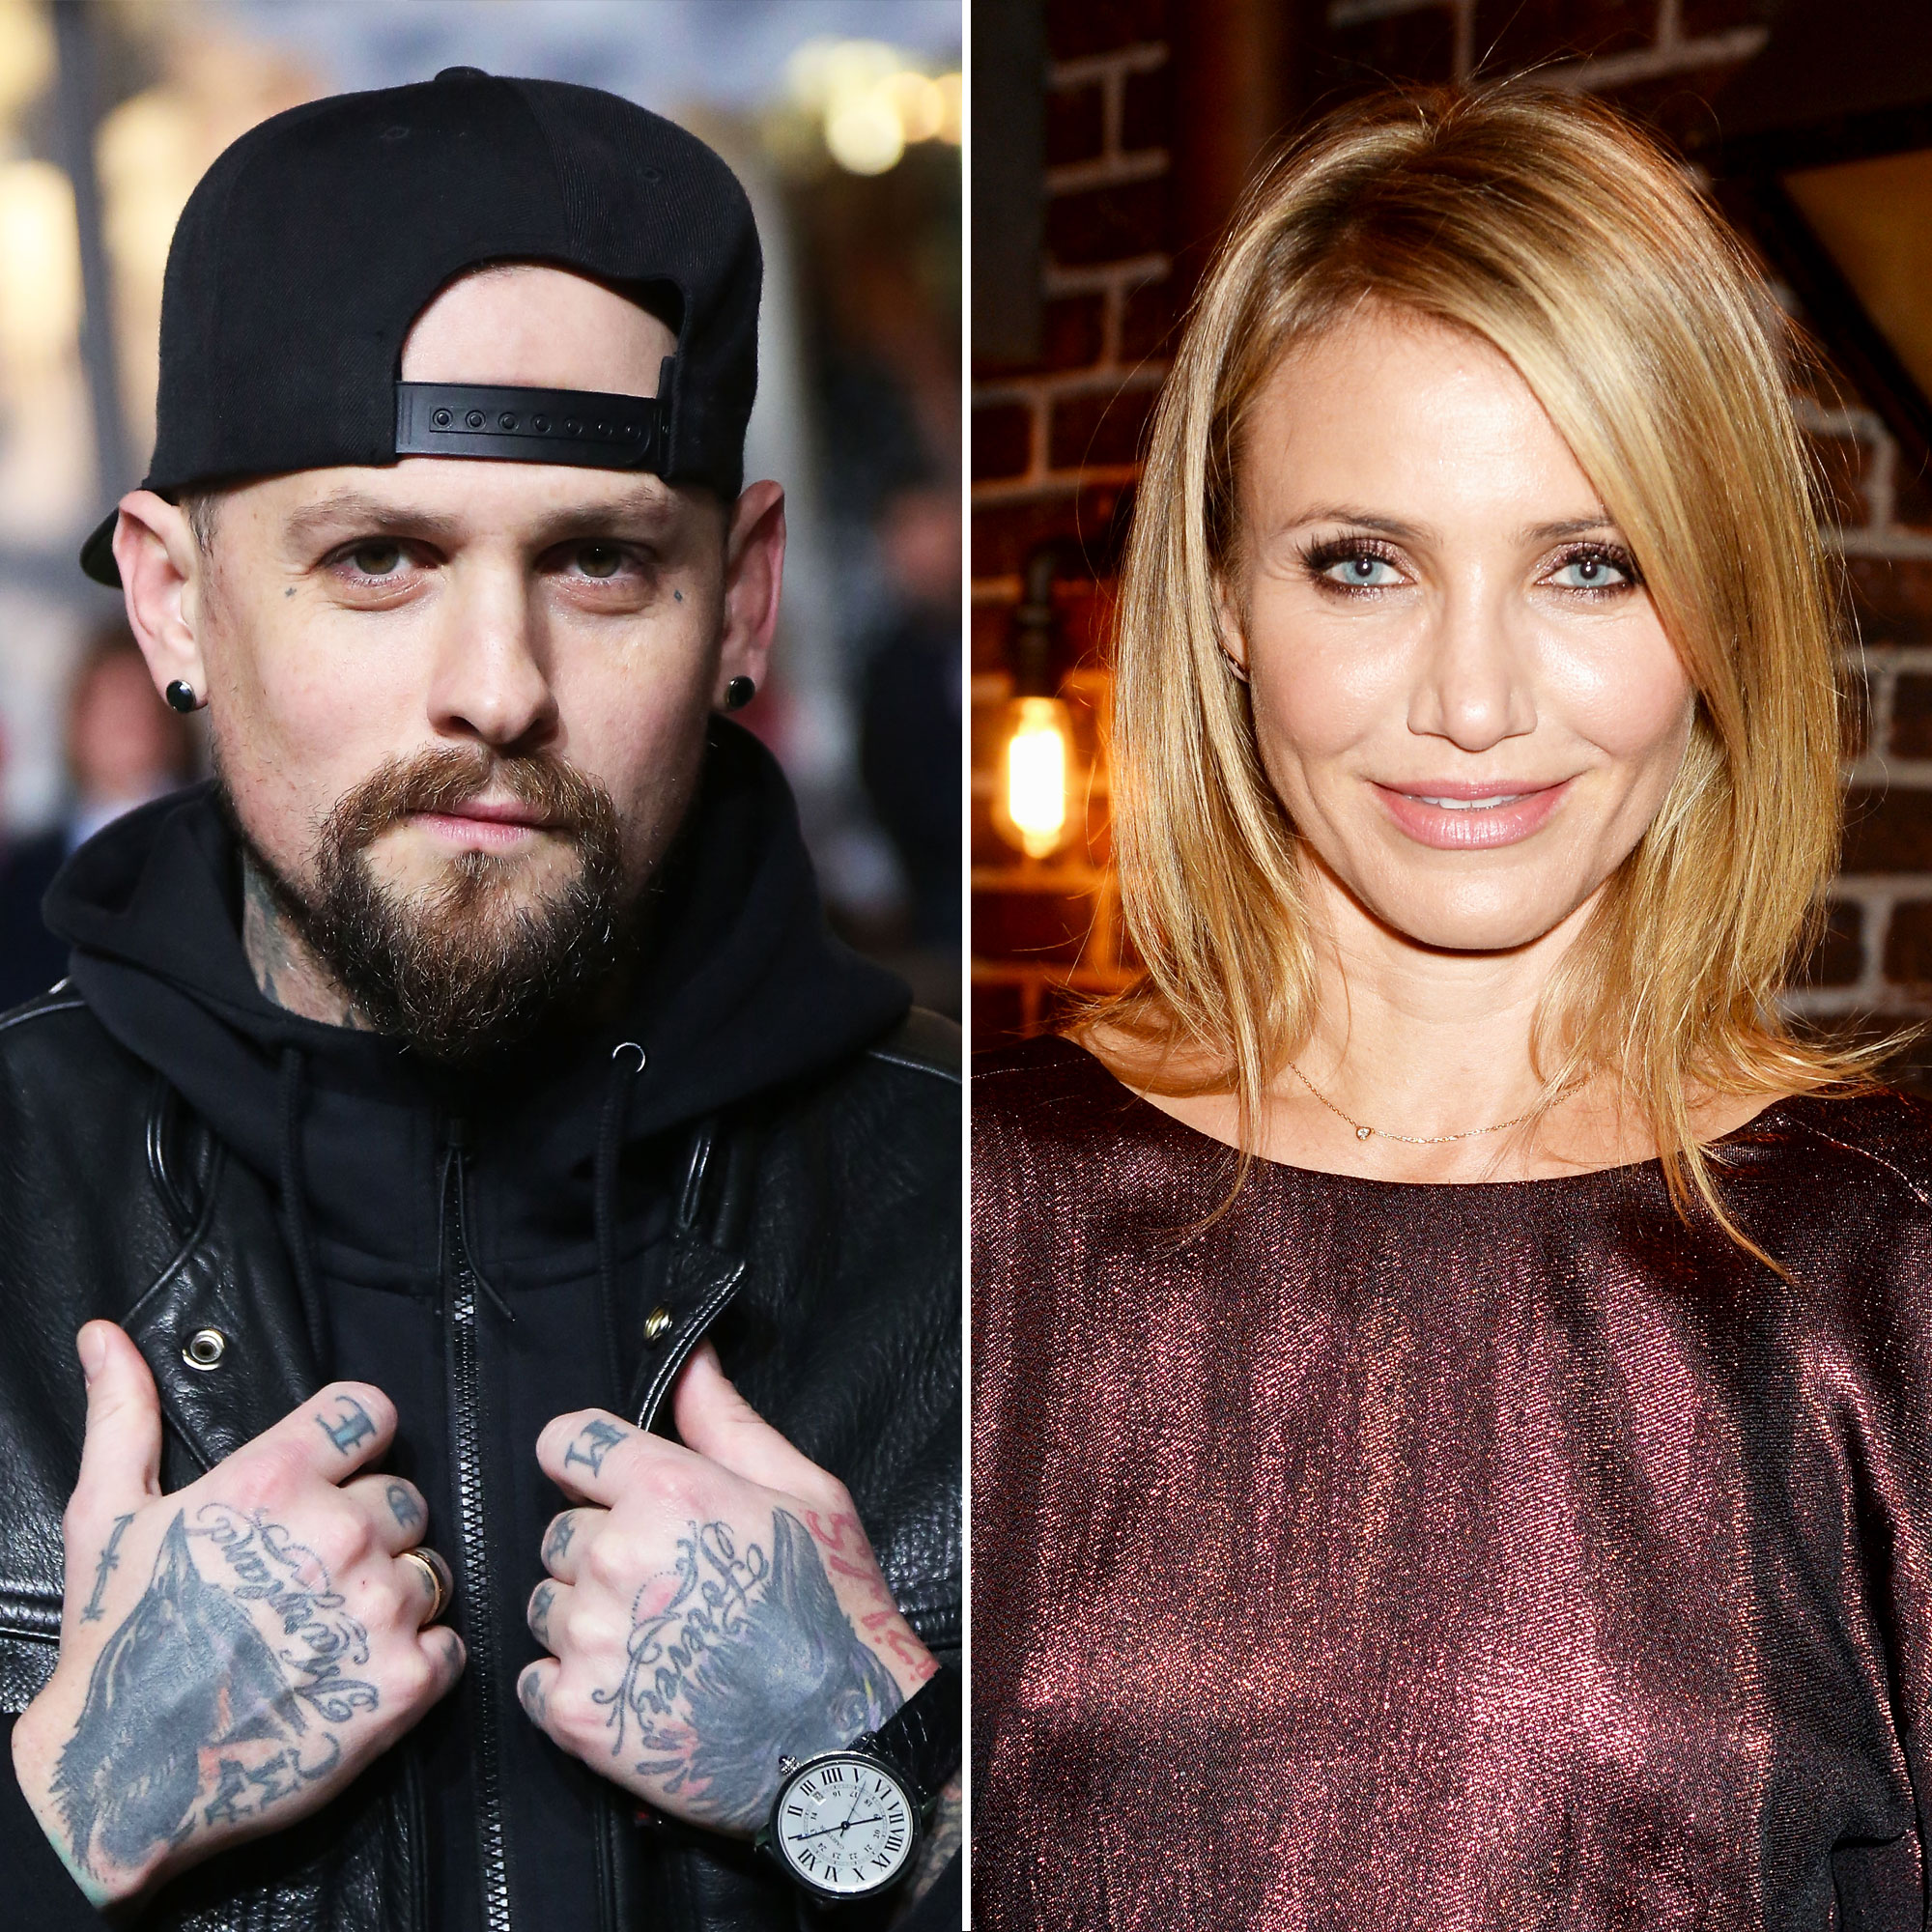 """A Timeline of Cameron Diaz and Benji Madden's Private Relationship - A month after the news of his romance with Diaz broke, the Good Charlotte member told Australian radio station Nova FM that he and his twin brother, Joel Madden , are """" lucky guys """" to be in committed relationships. (Joel has been married to Richie since December 2010.)"""